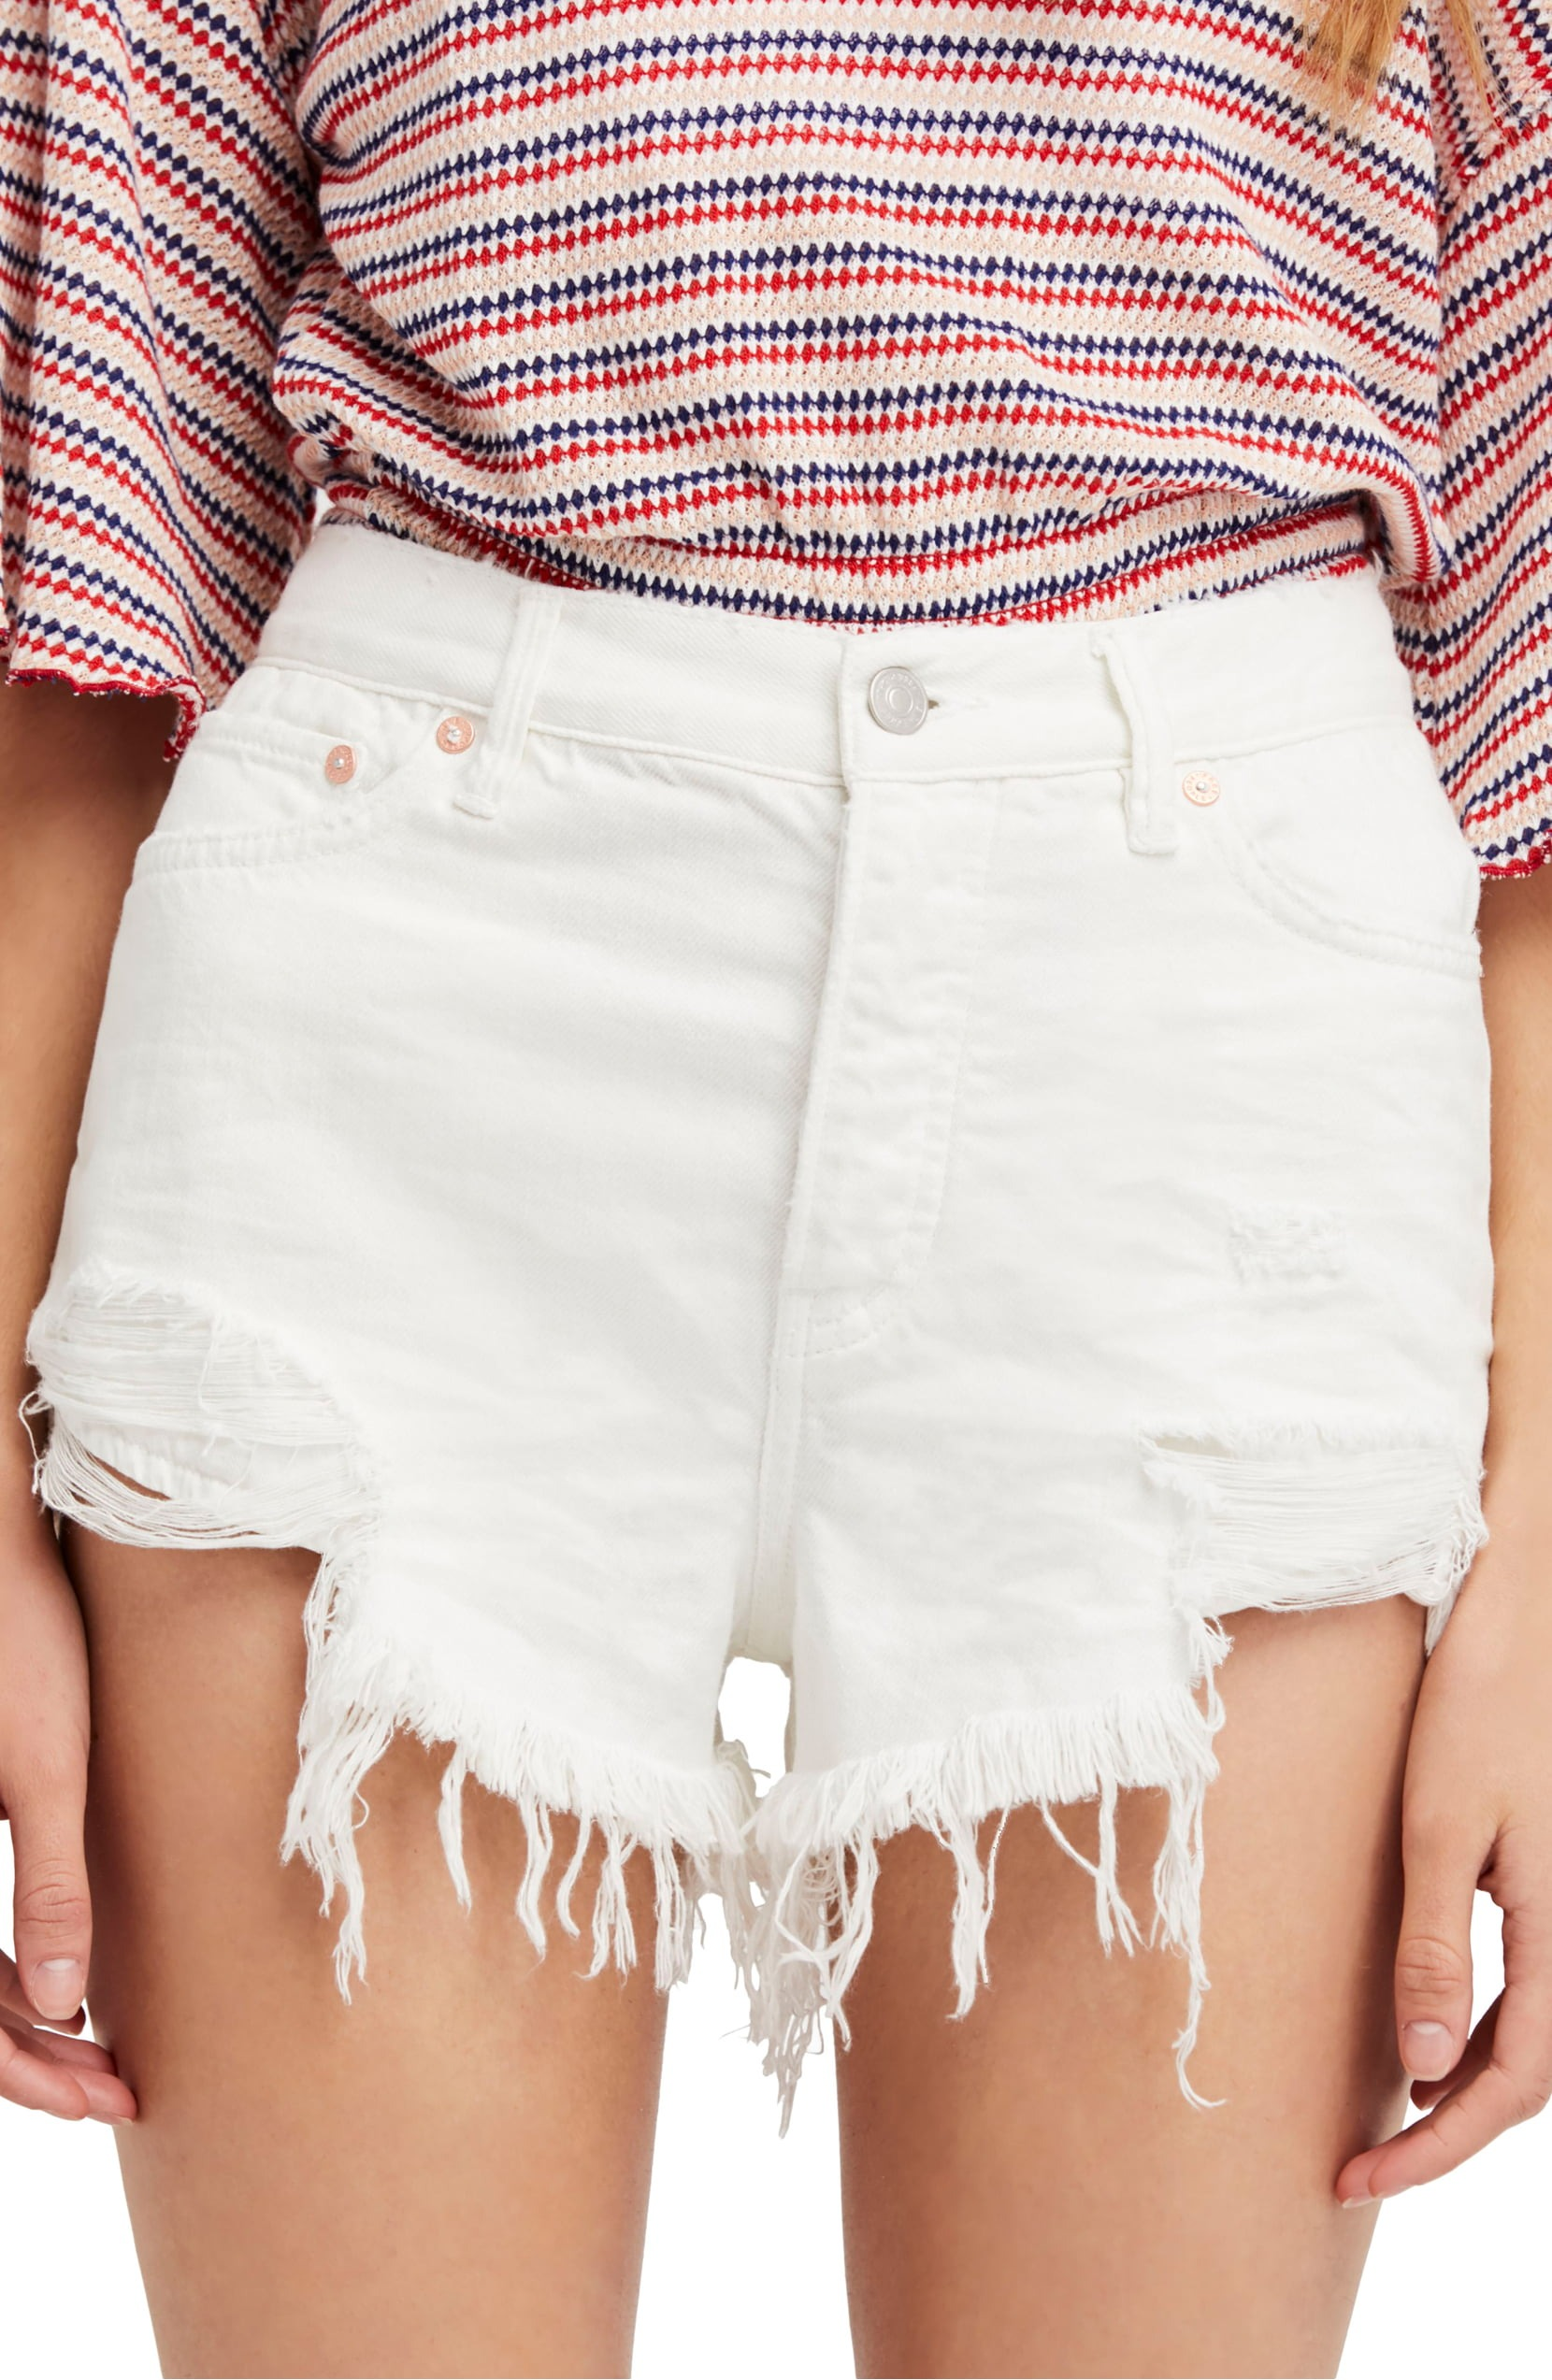 Free-People-Spring-White-Women-039-s-Size-29-High-Rise-Ripped-Denim-Shorts-68-407 thumbnail 1